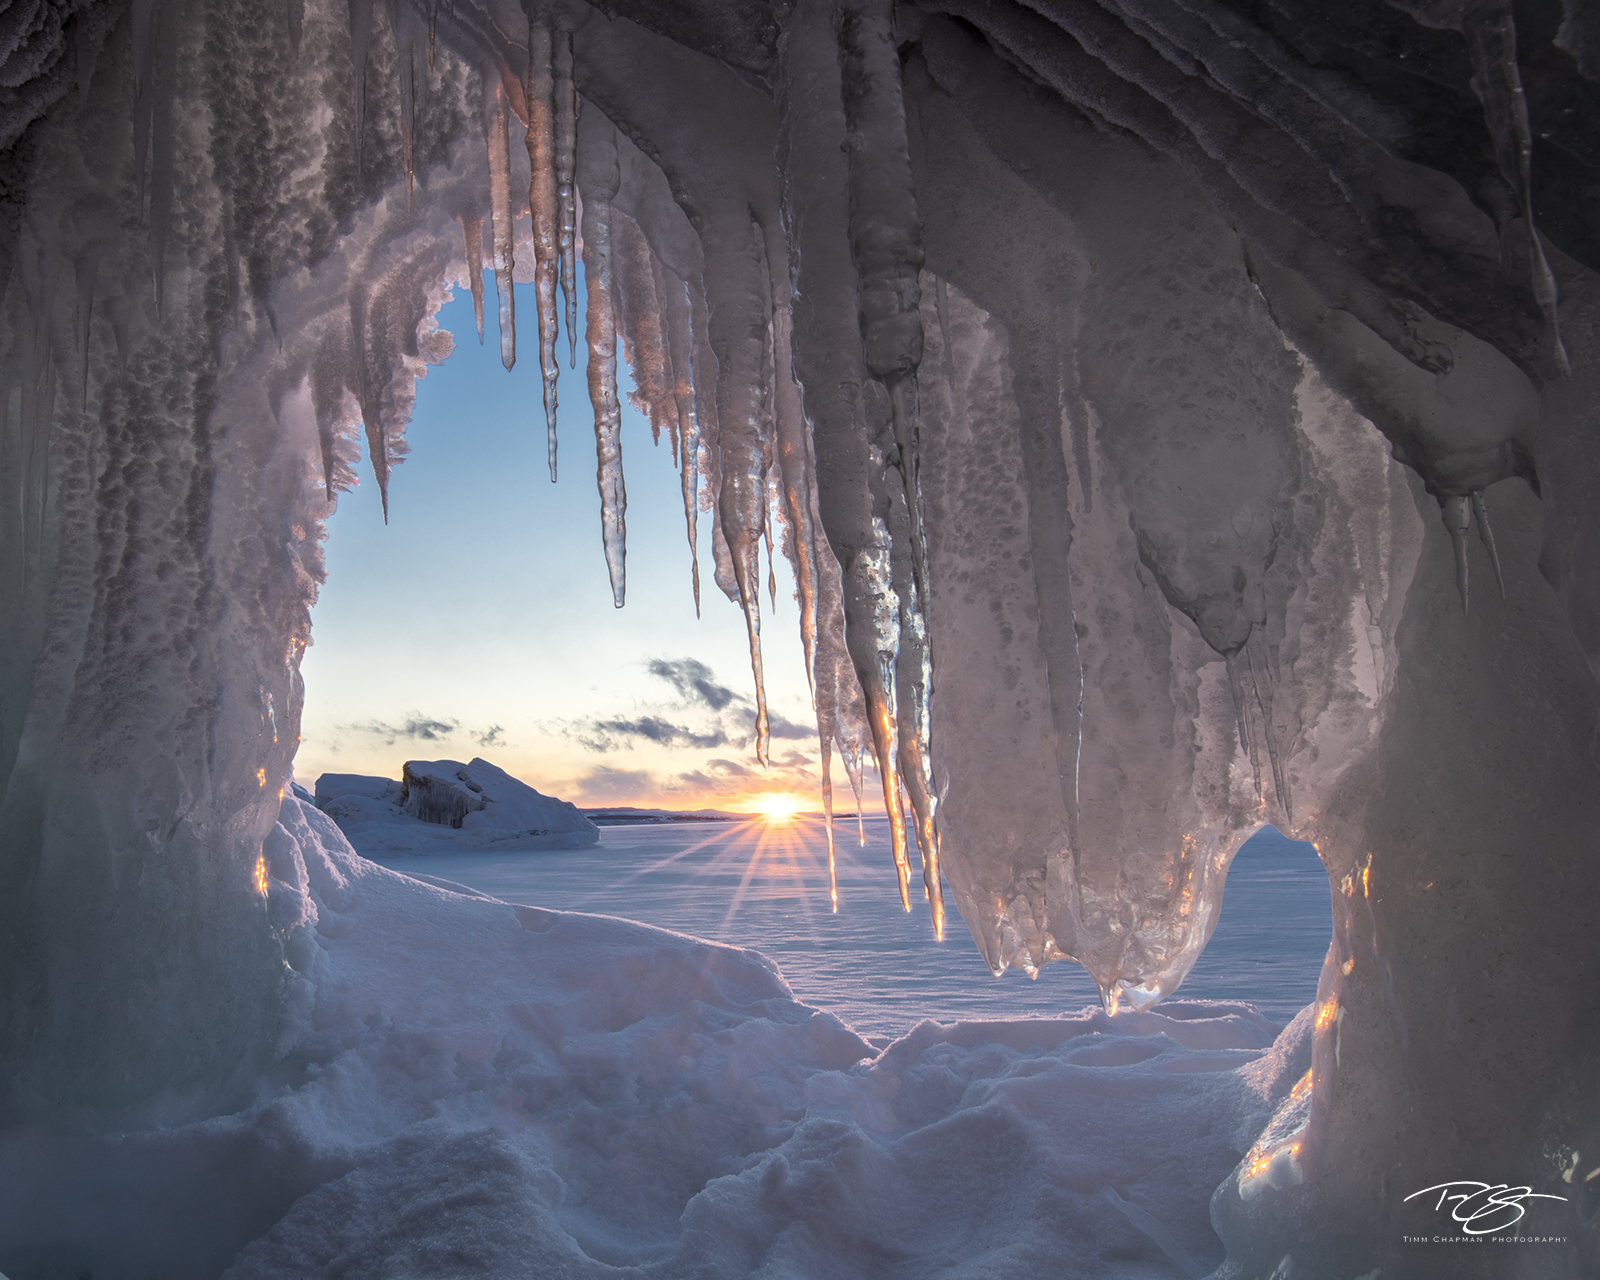 The setting sun casts its last warm rays into an ice cave